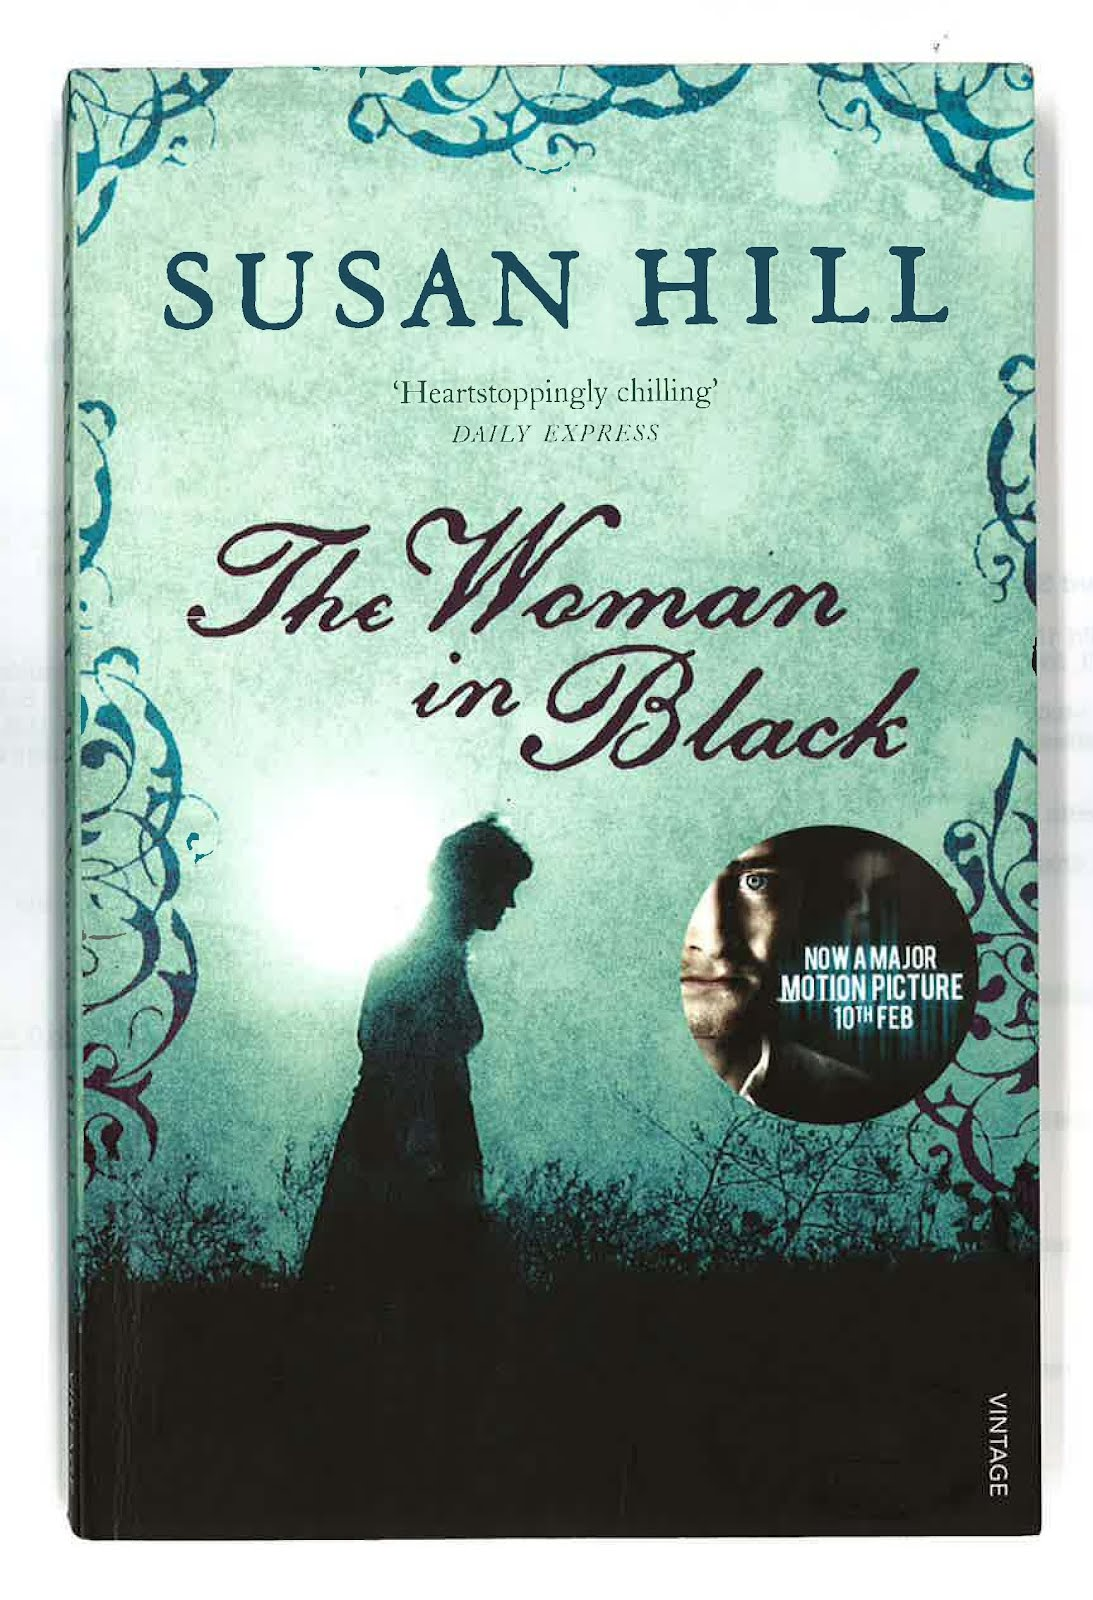 "woman in black susan hill ""it was nine-thirty on christmas eve"" susan hill's acclaimed ghost story comes dramatically alive in stephen mallatratt's ingenious stage adaptation."